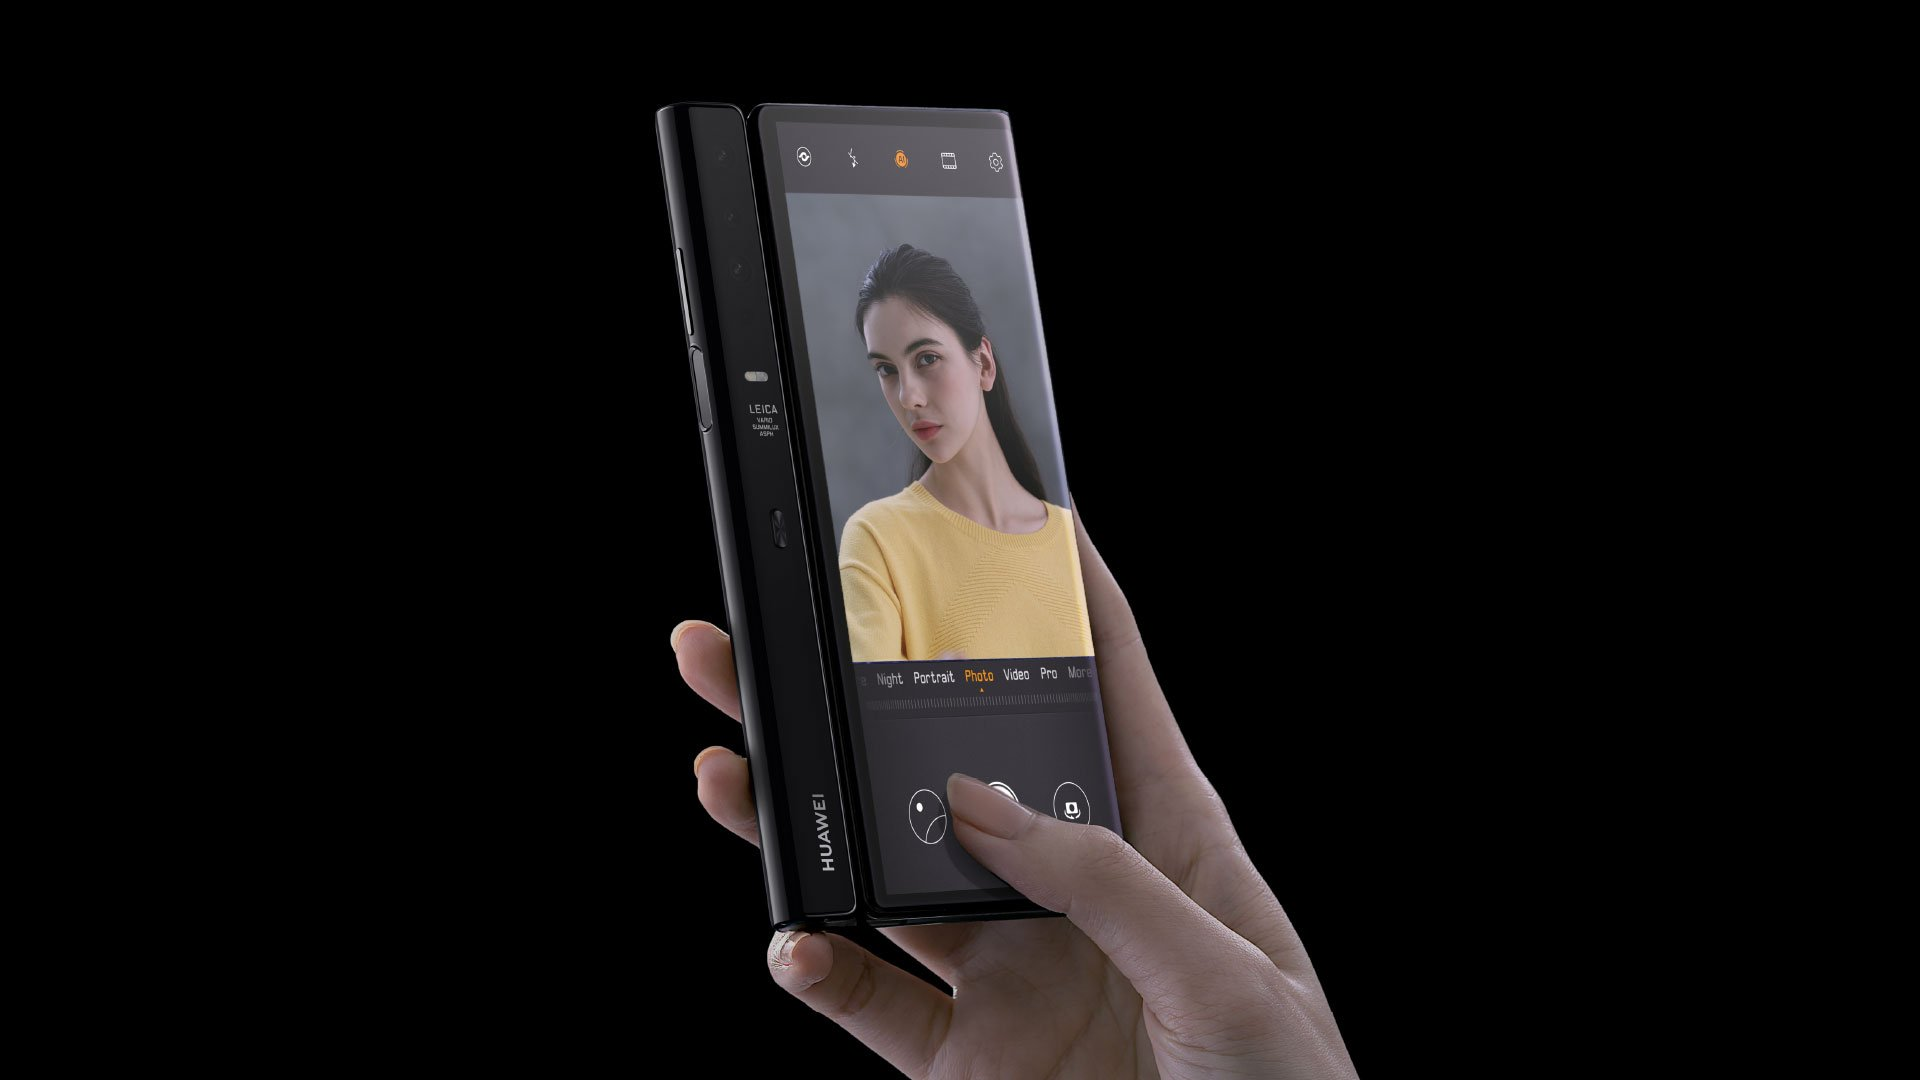 Mate X will offer some unique camera experiences when folded.